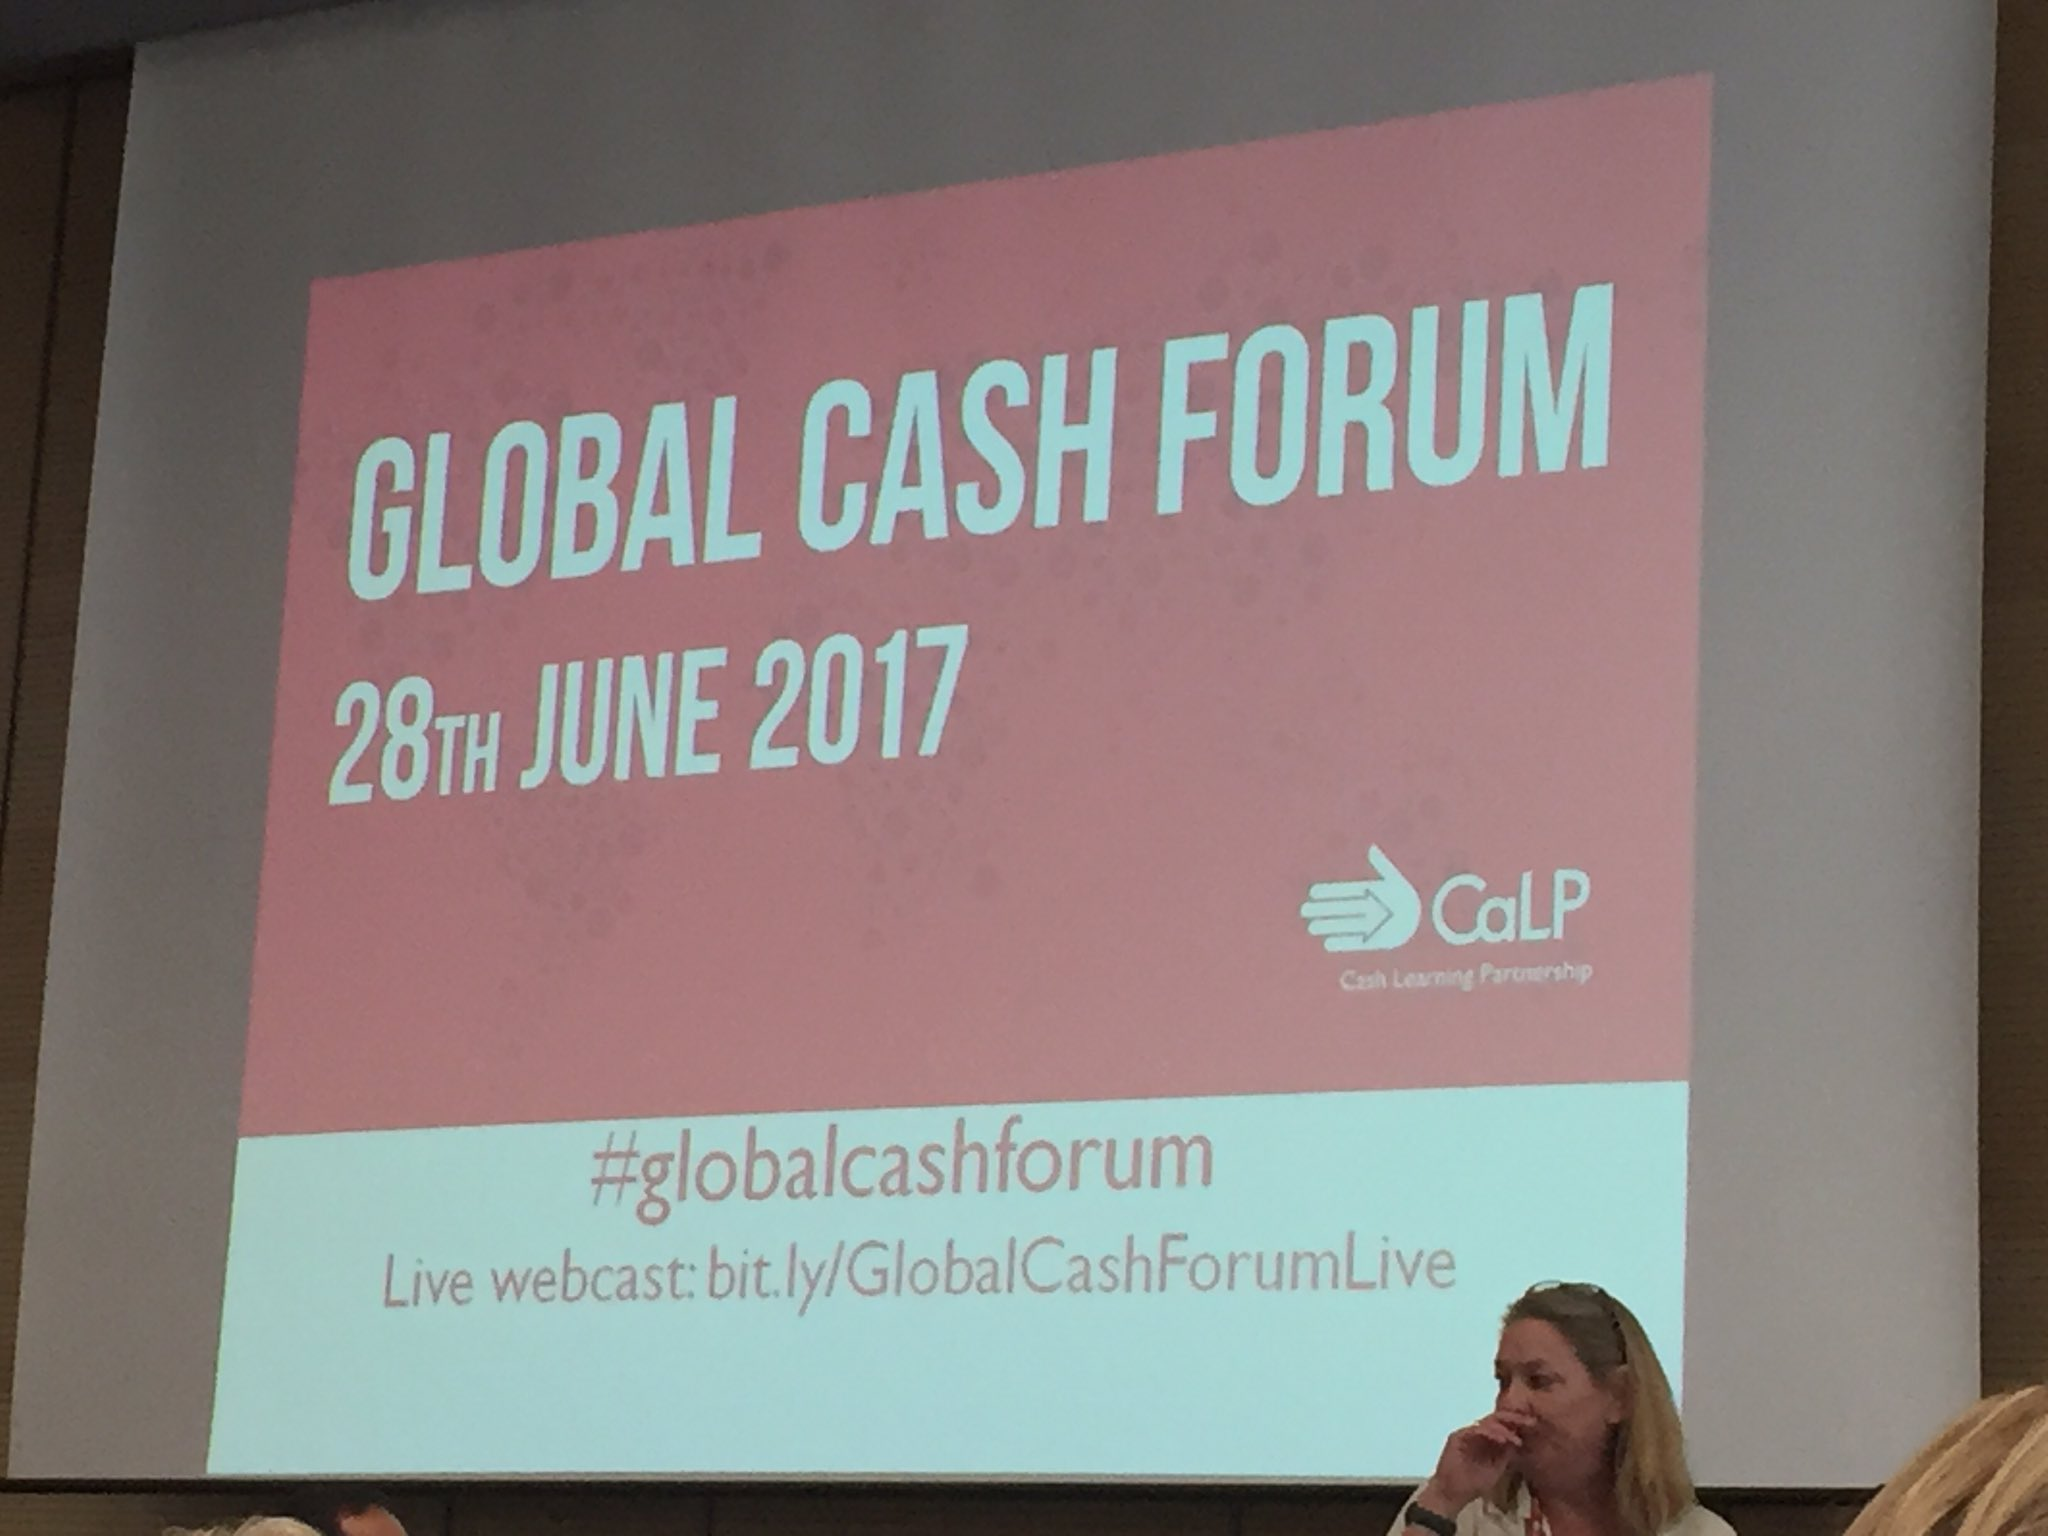 So pleased to be representing @careintuk at the #globalcashforum today.  Learning from peers to make hum. aid more effective and efficient https://t.co/h2kuXa6p2W